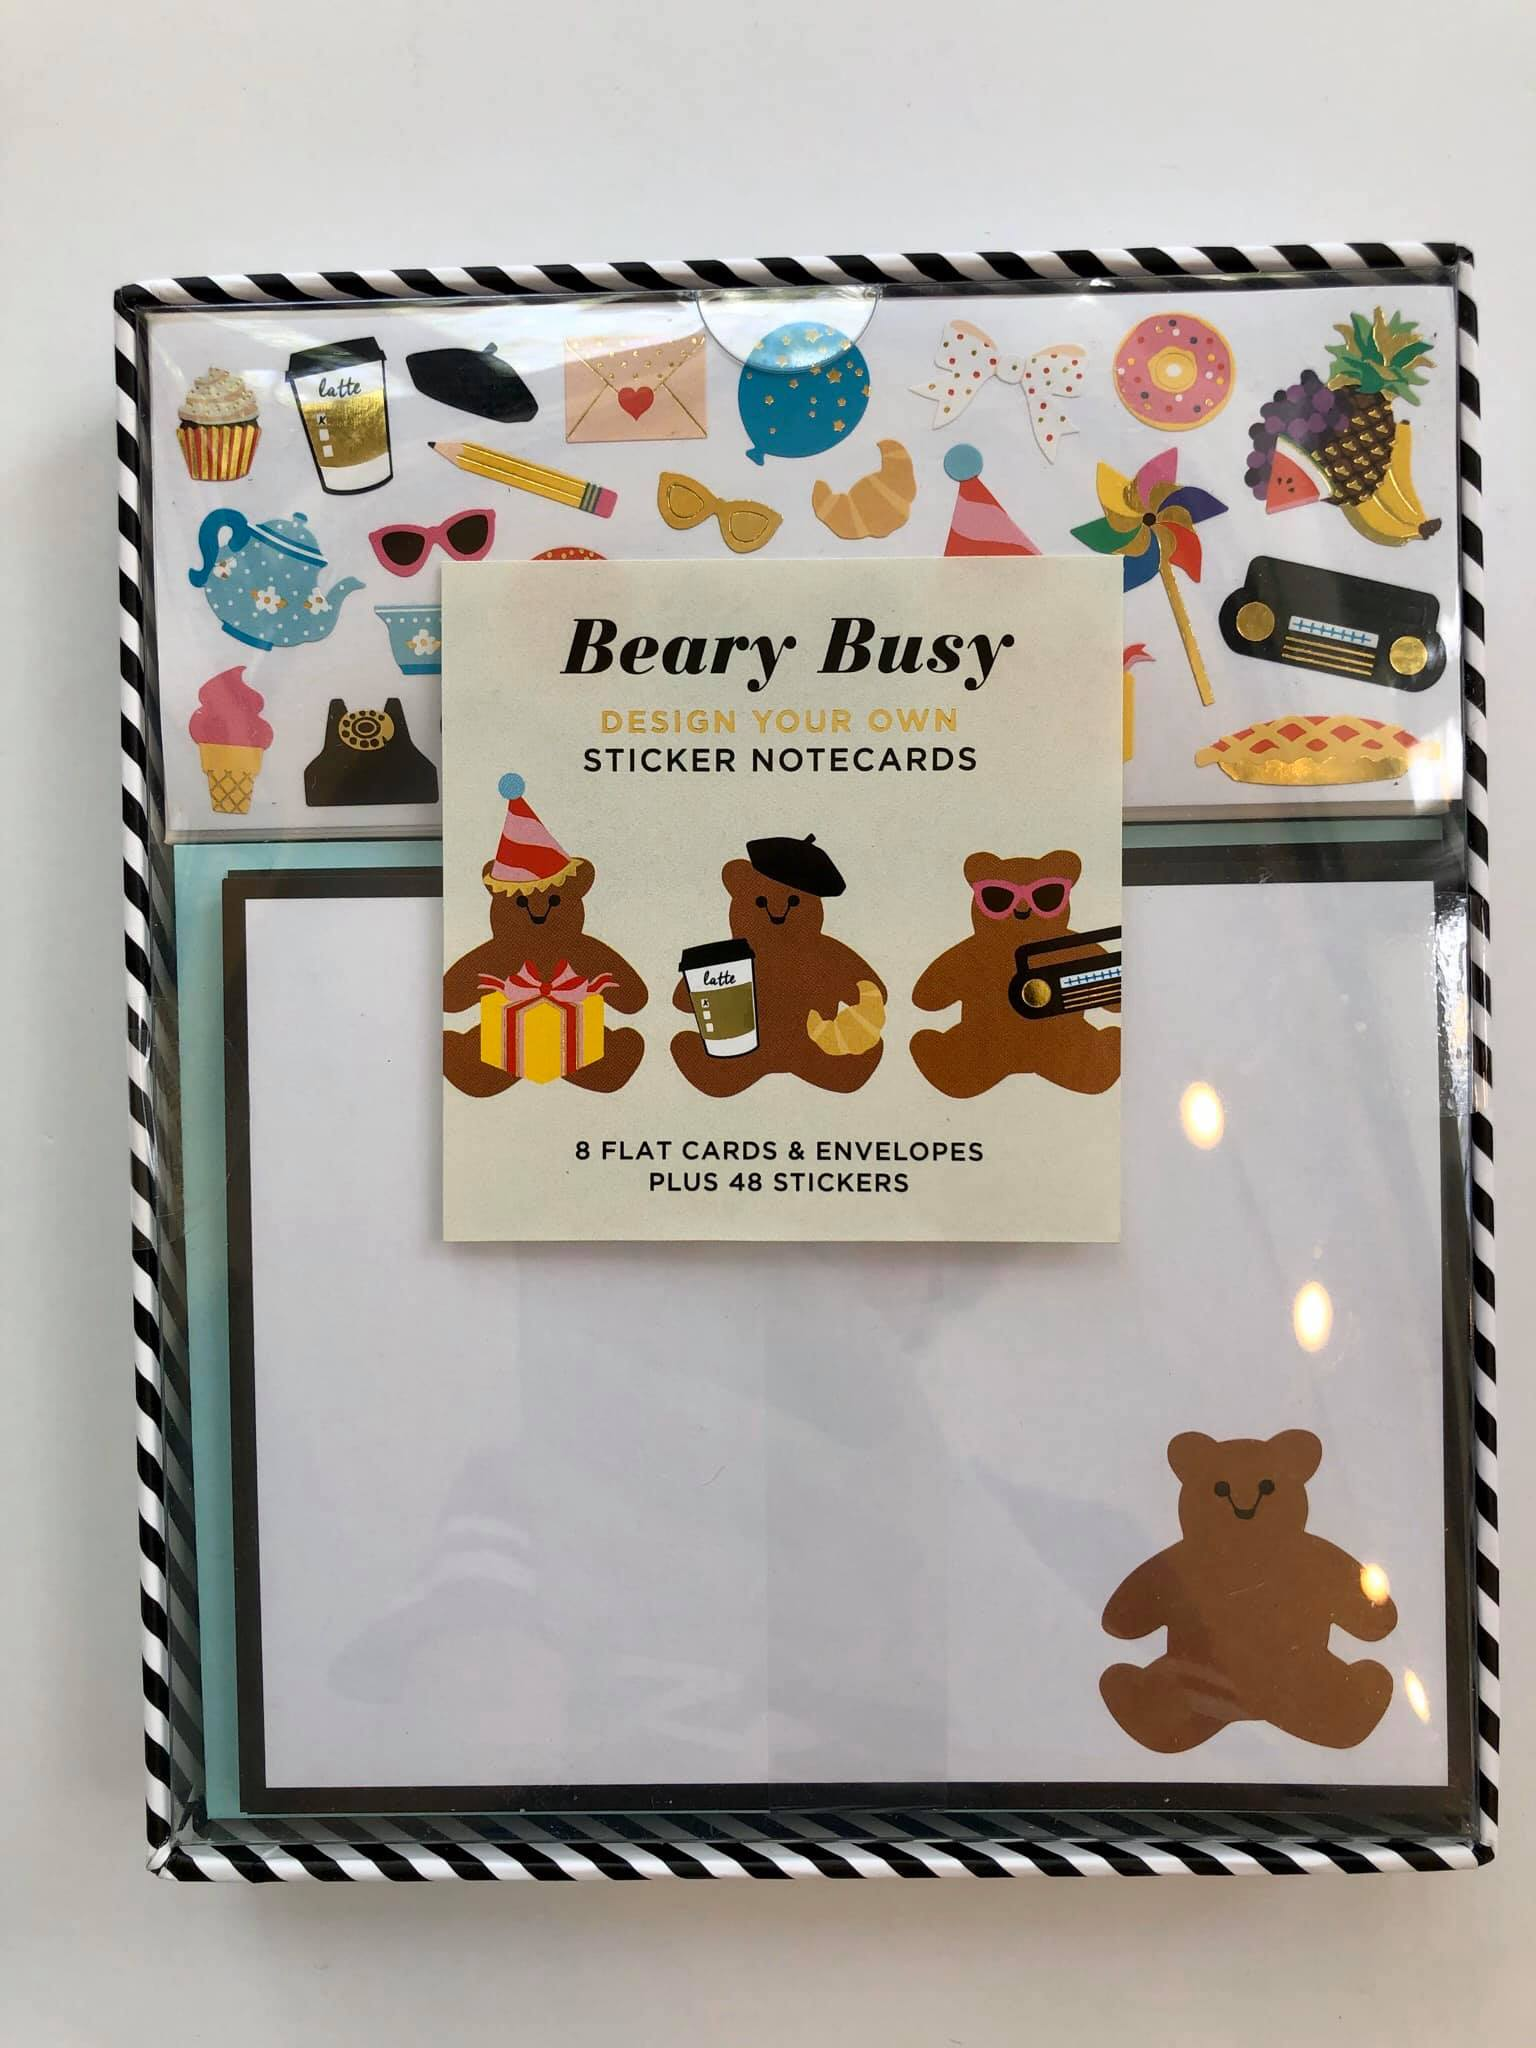 Mrs. Grossman's Beary Busy Sticker Stationary